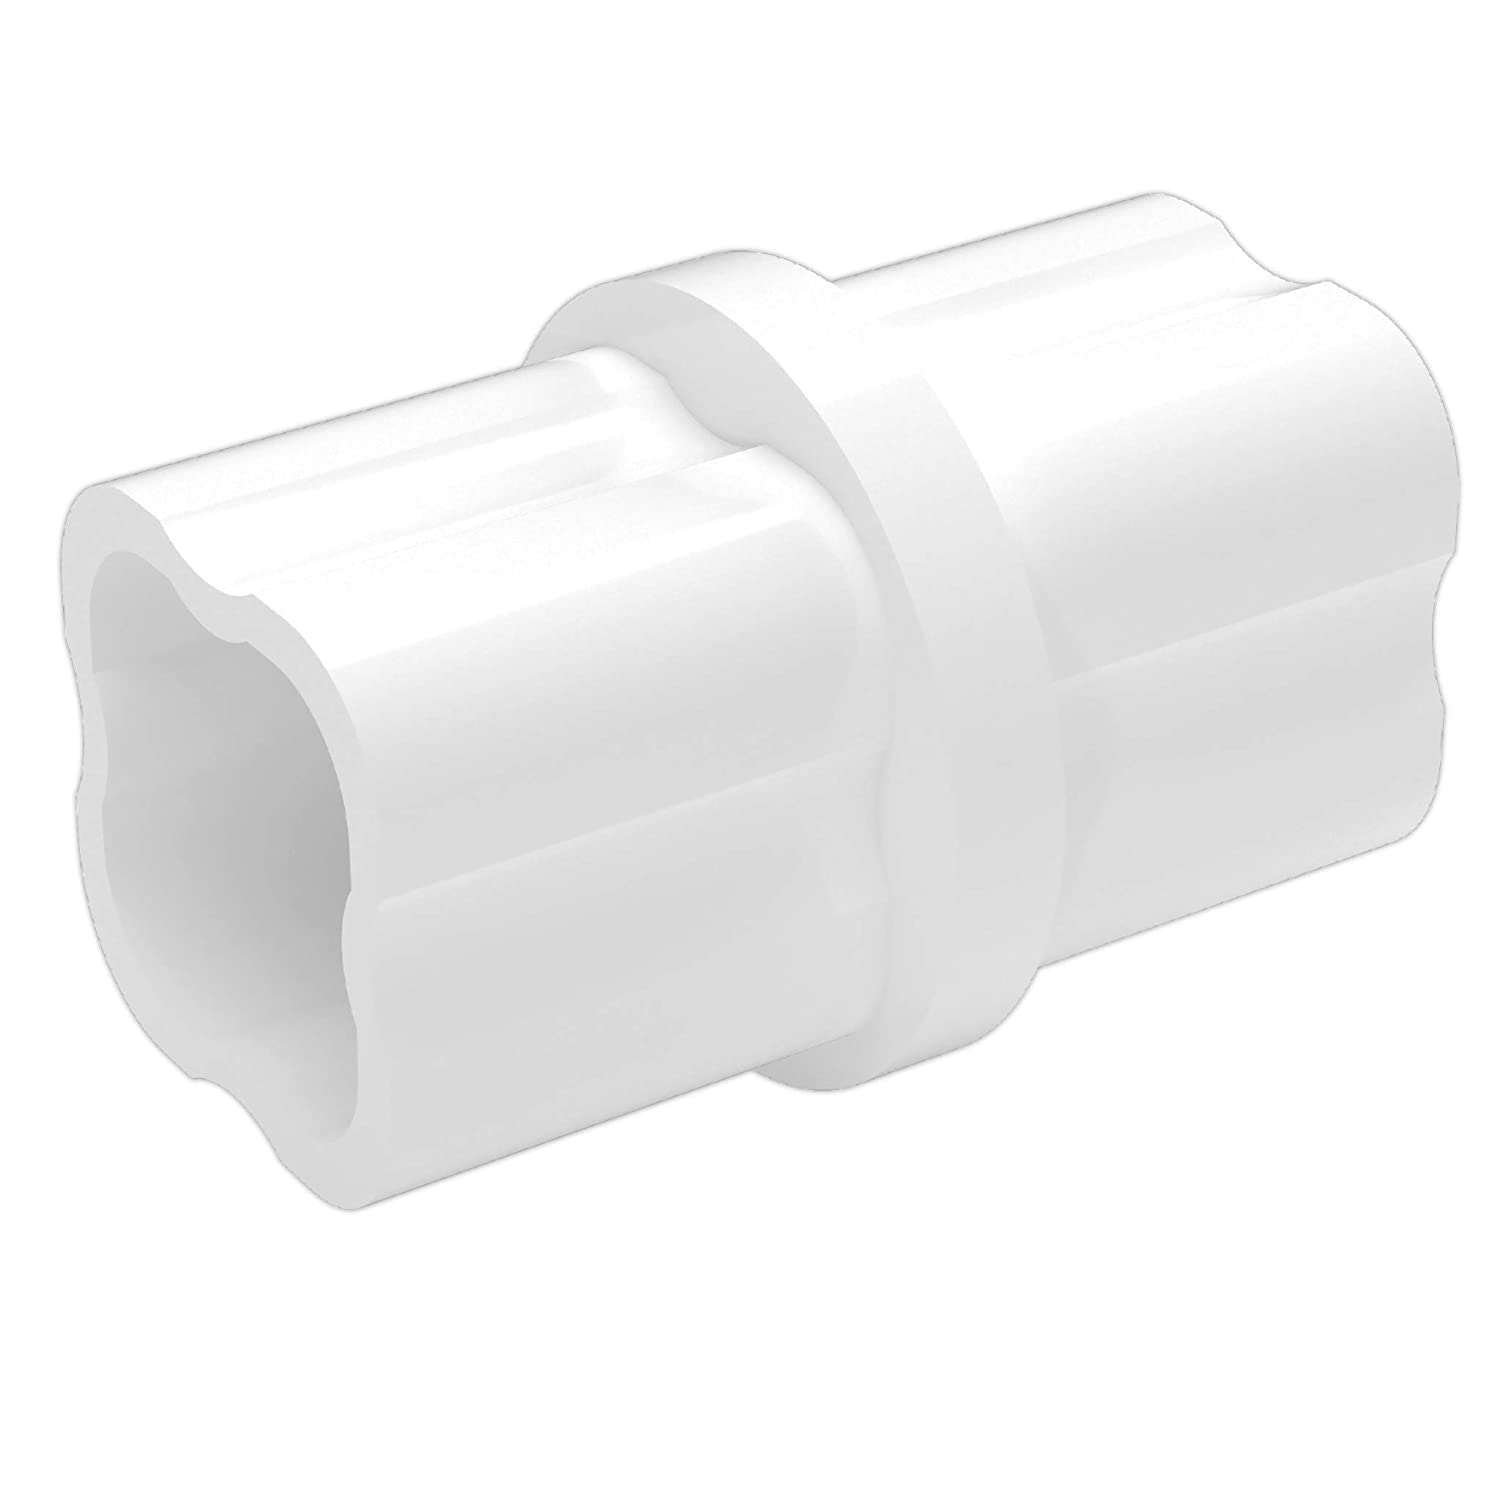 "FORMUFIT F034ICO-WH-10 Internal PVC Coupling, Furniture Grade, 3/4"" Size, White (Pack of 10)"